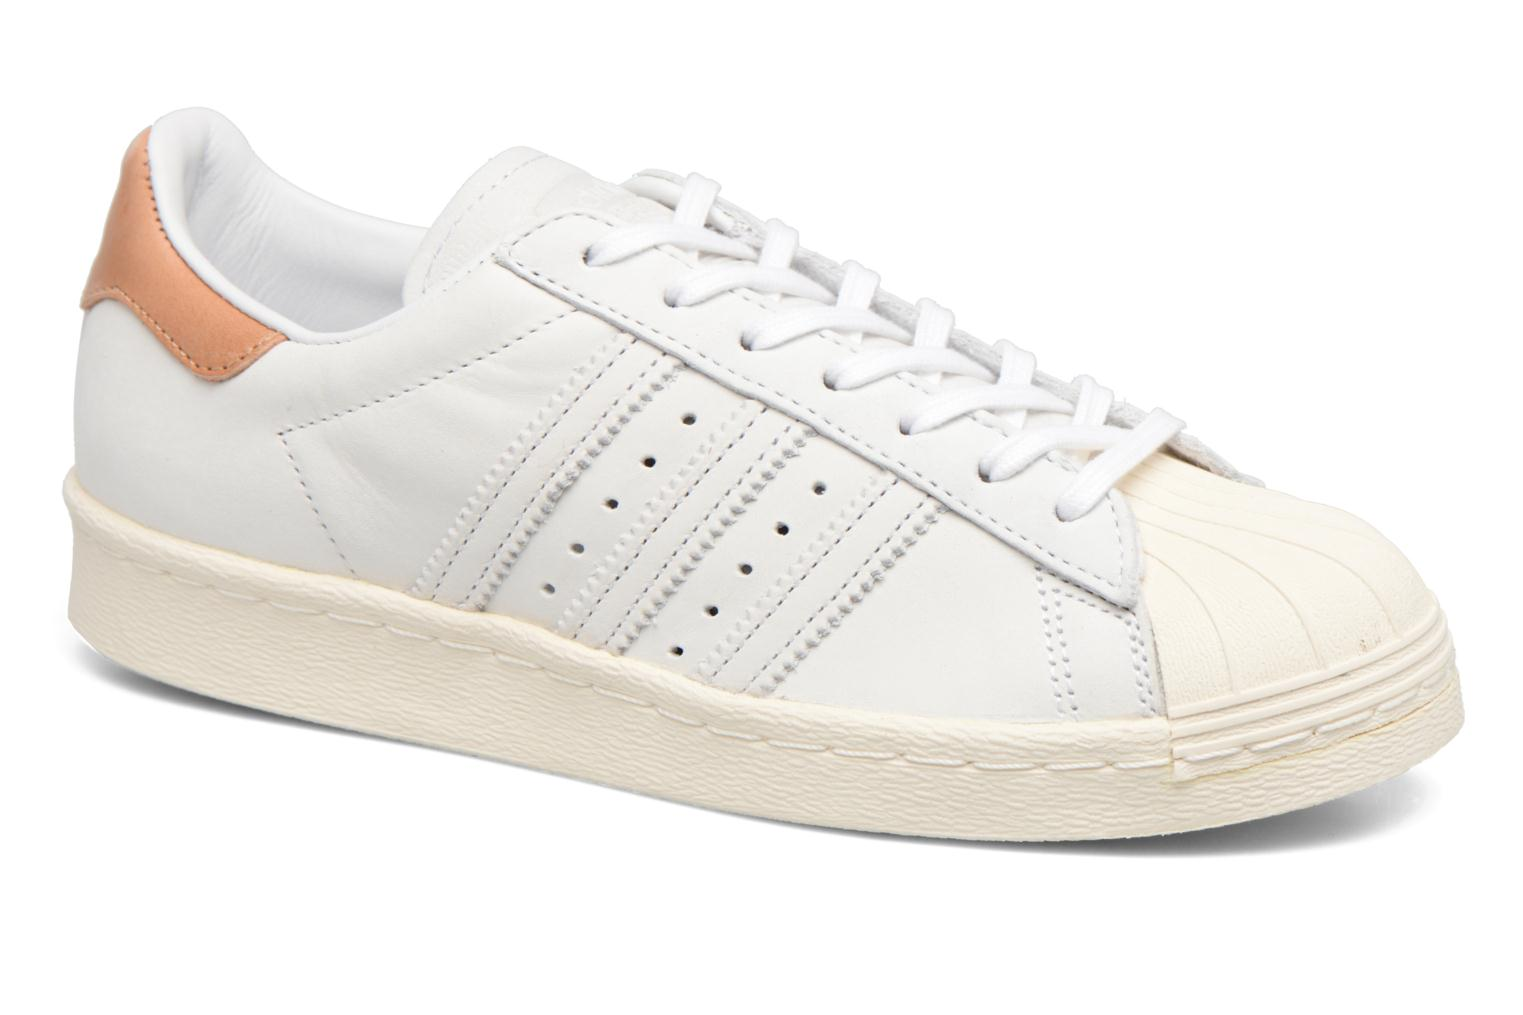 Superstar 80S W Ftwbla/Ftwbla/Blacas3